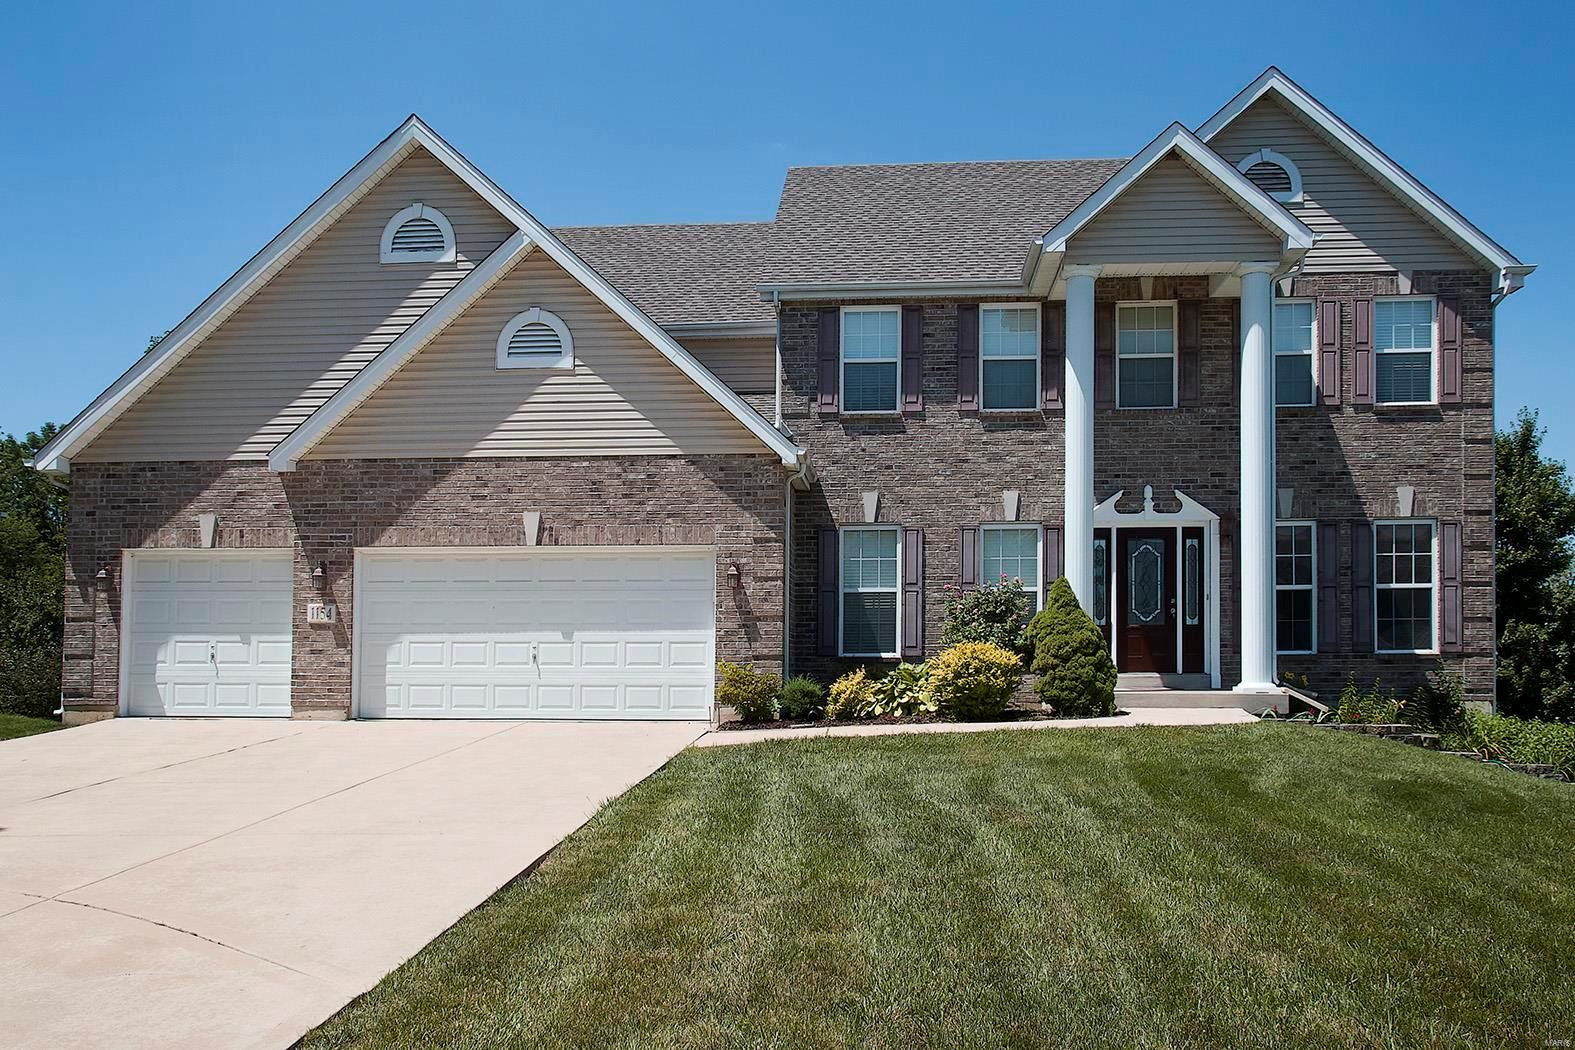 1154 Hollow Valley Court, Saint Charles, MO 63304 - MLS#: 21063578